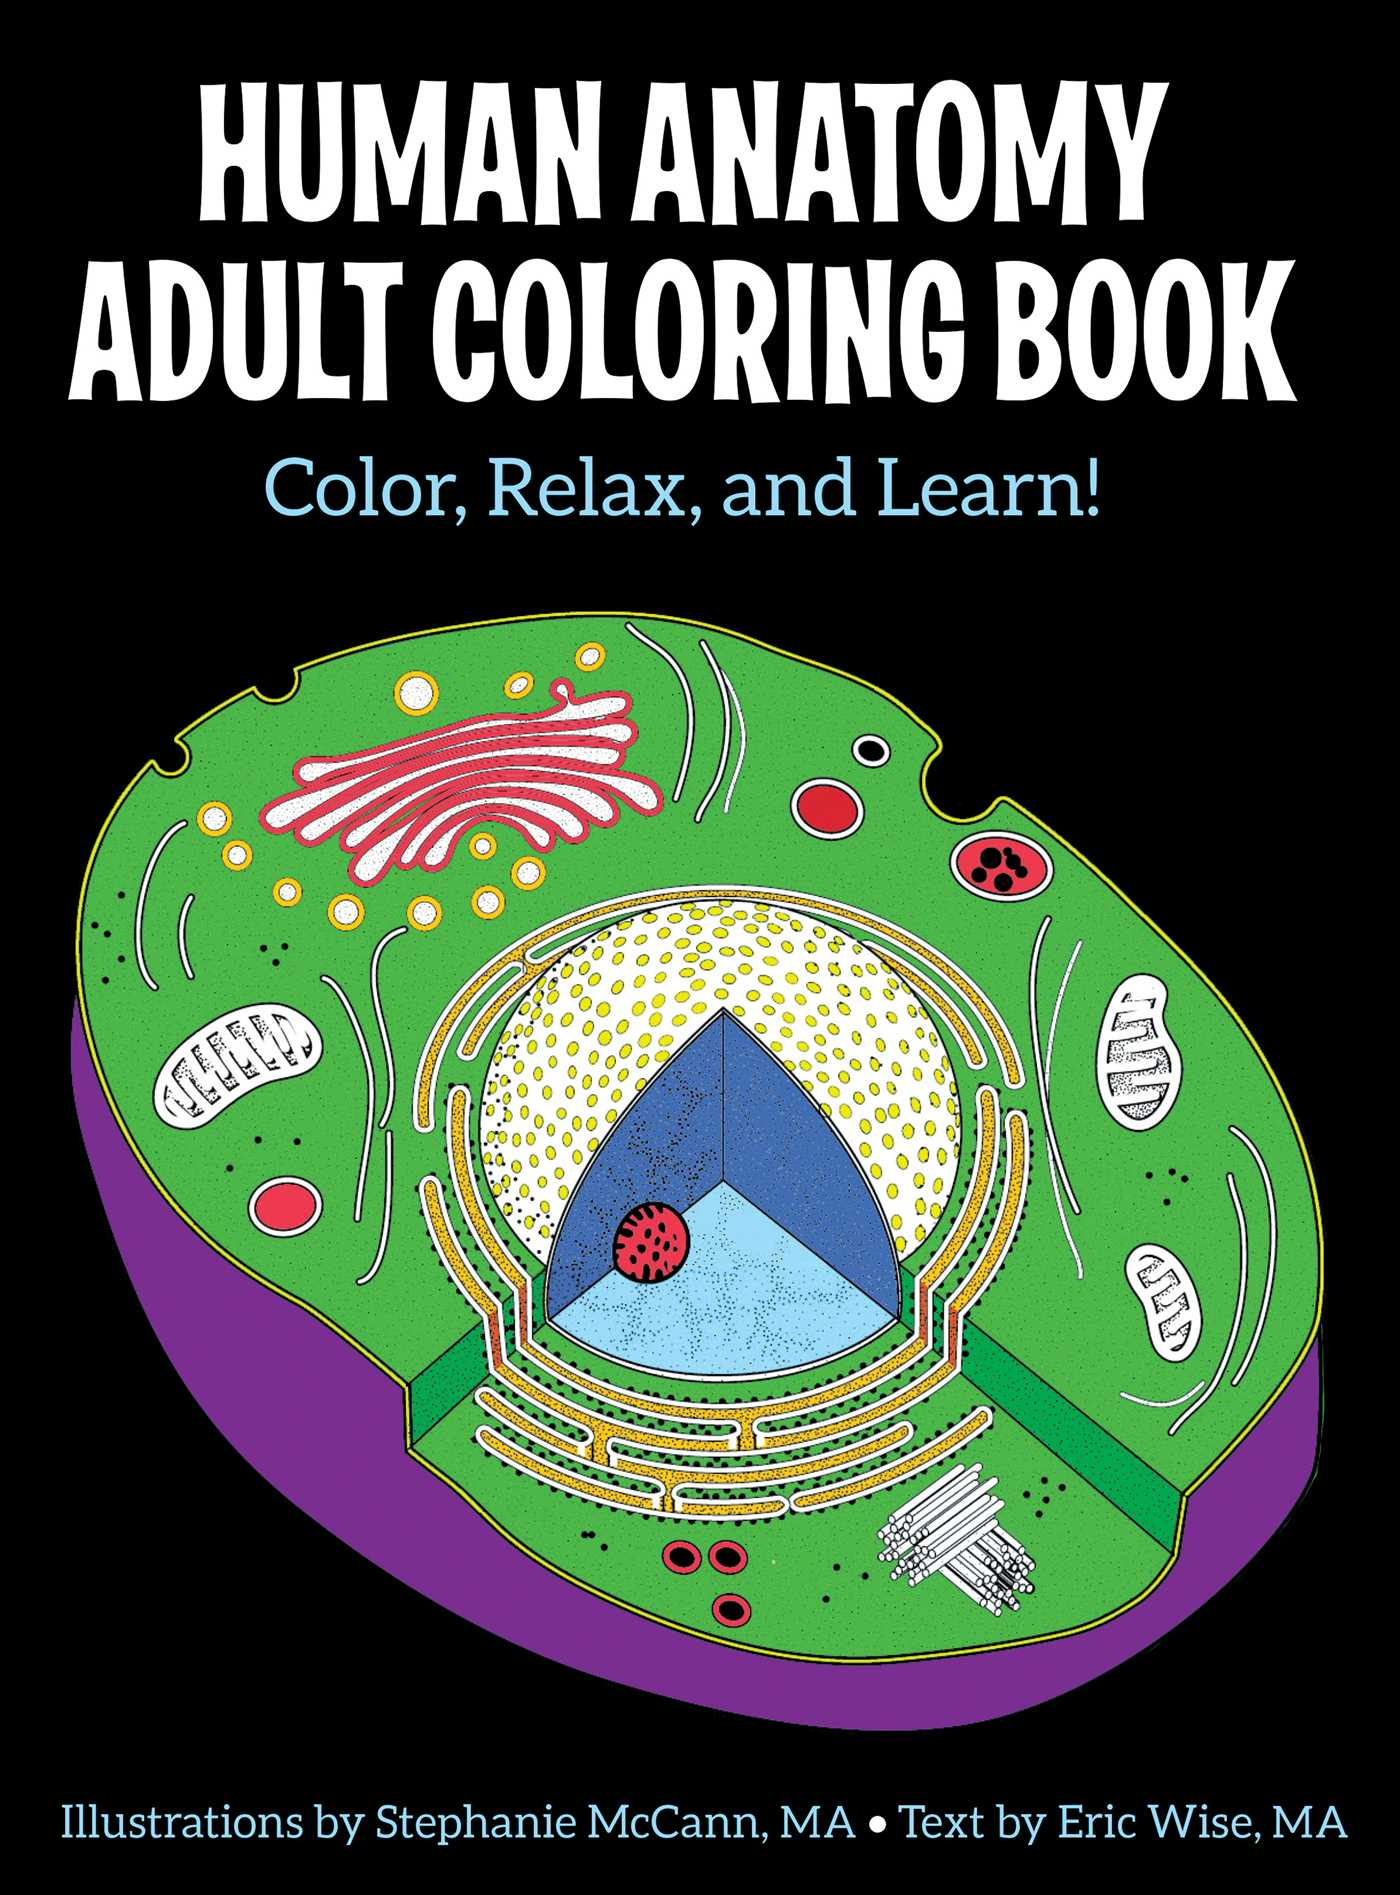 Human Anatomy Adult Coloring Book | Book by Stephanie McCann, Eric ...